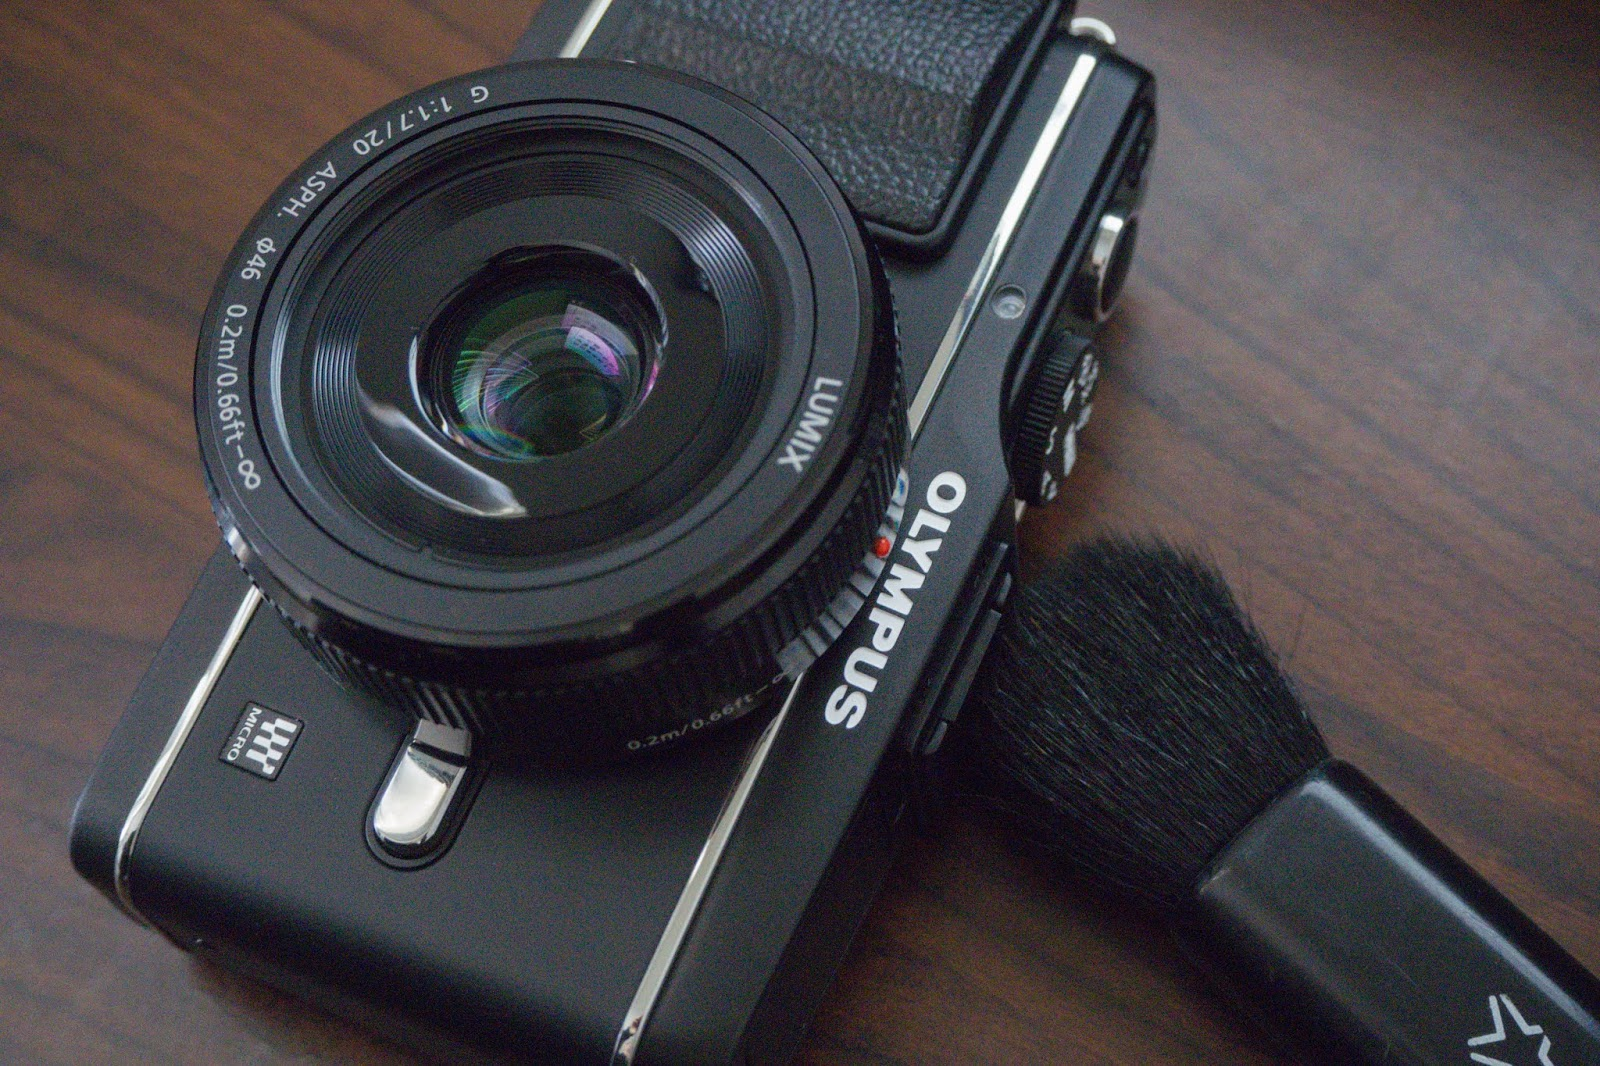 PHOTOGRAPHIC CENTRAL: Olympus OM-D EM10 Mark II Review